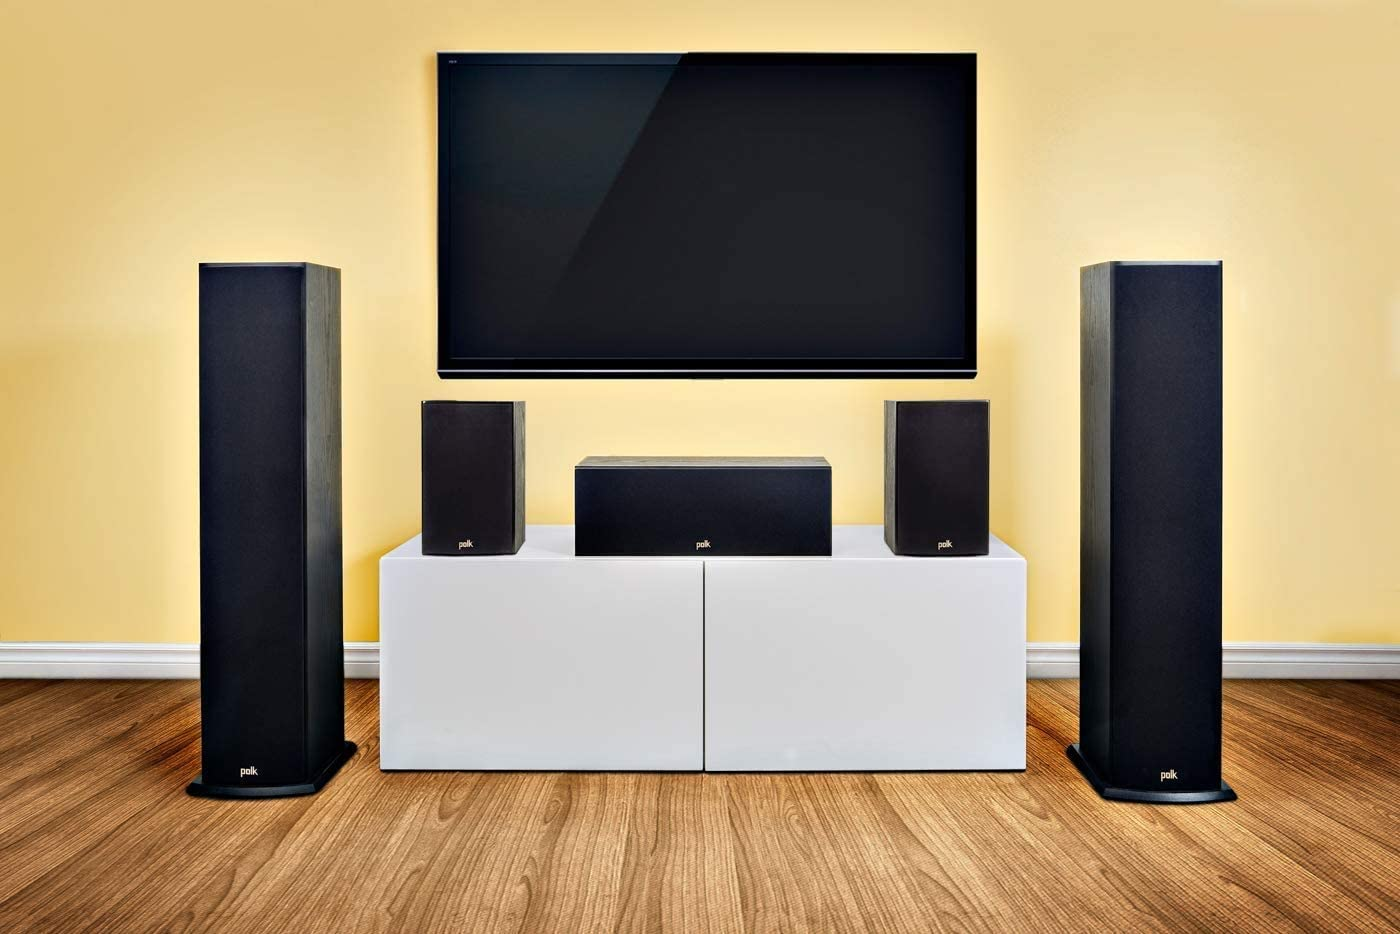 Speaker set in a living room with yellow walls